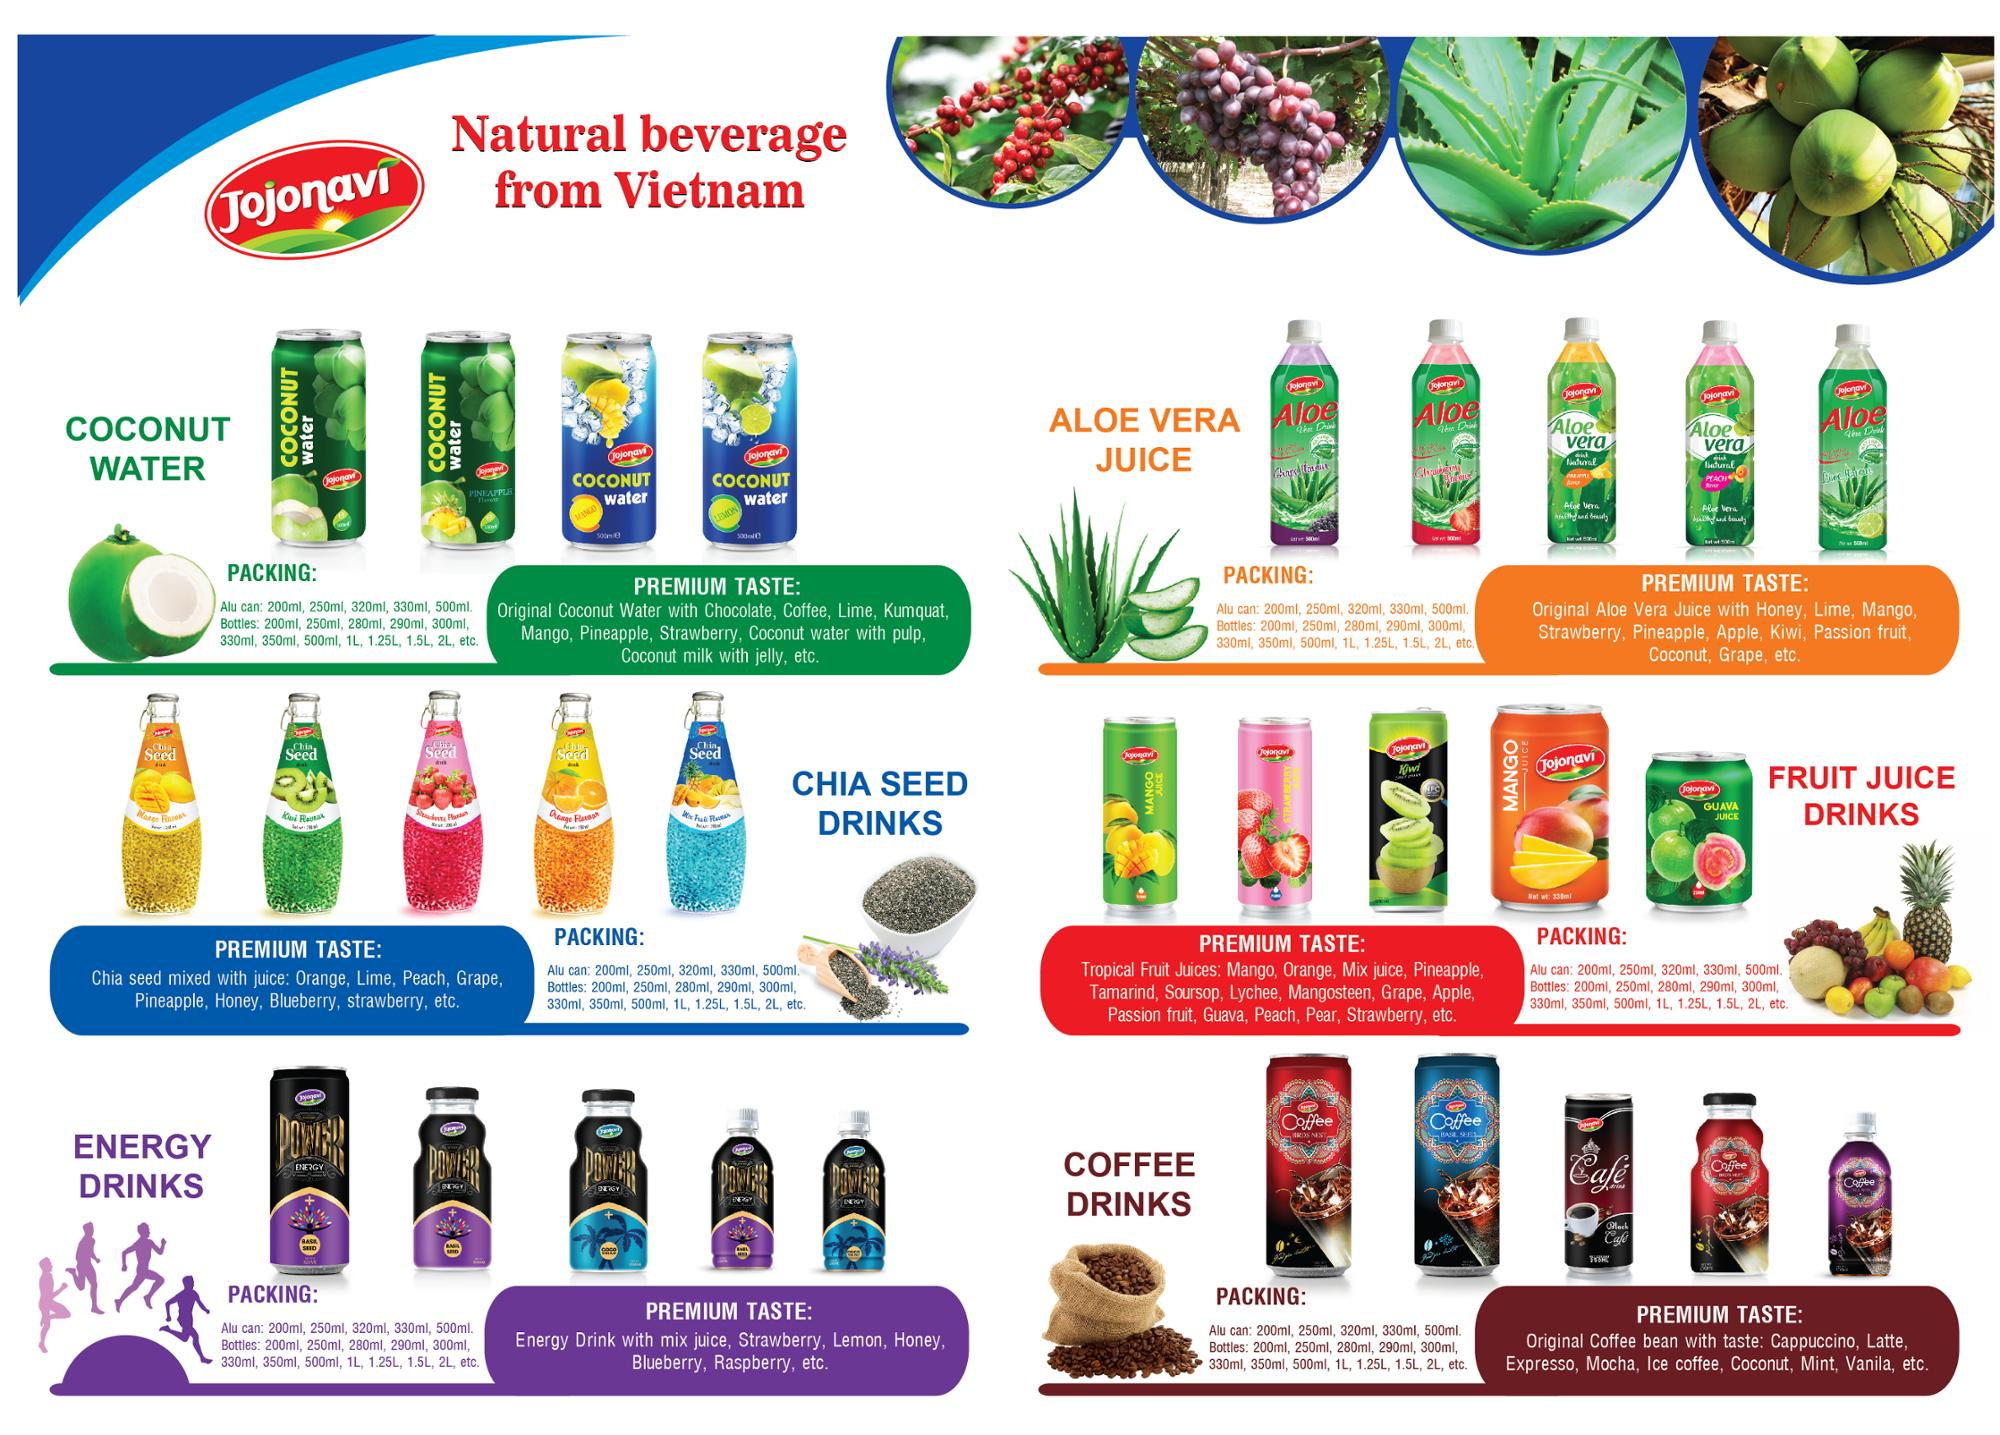 Aloe vera drink private label Export aloe vera products JOJONAVI brand